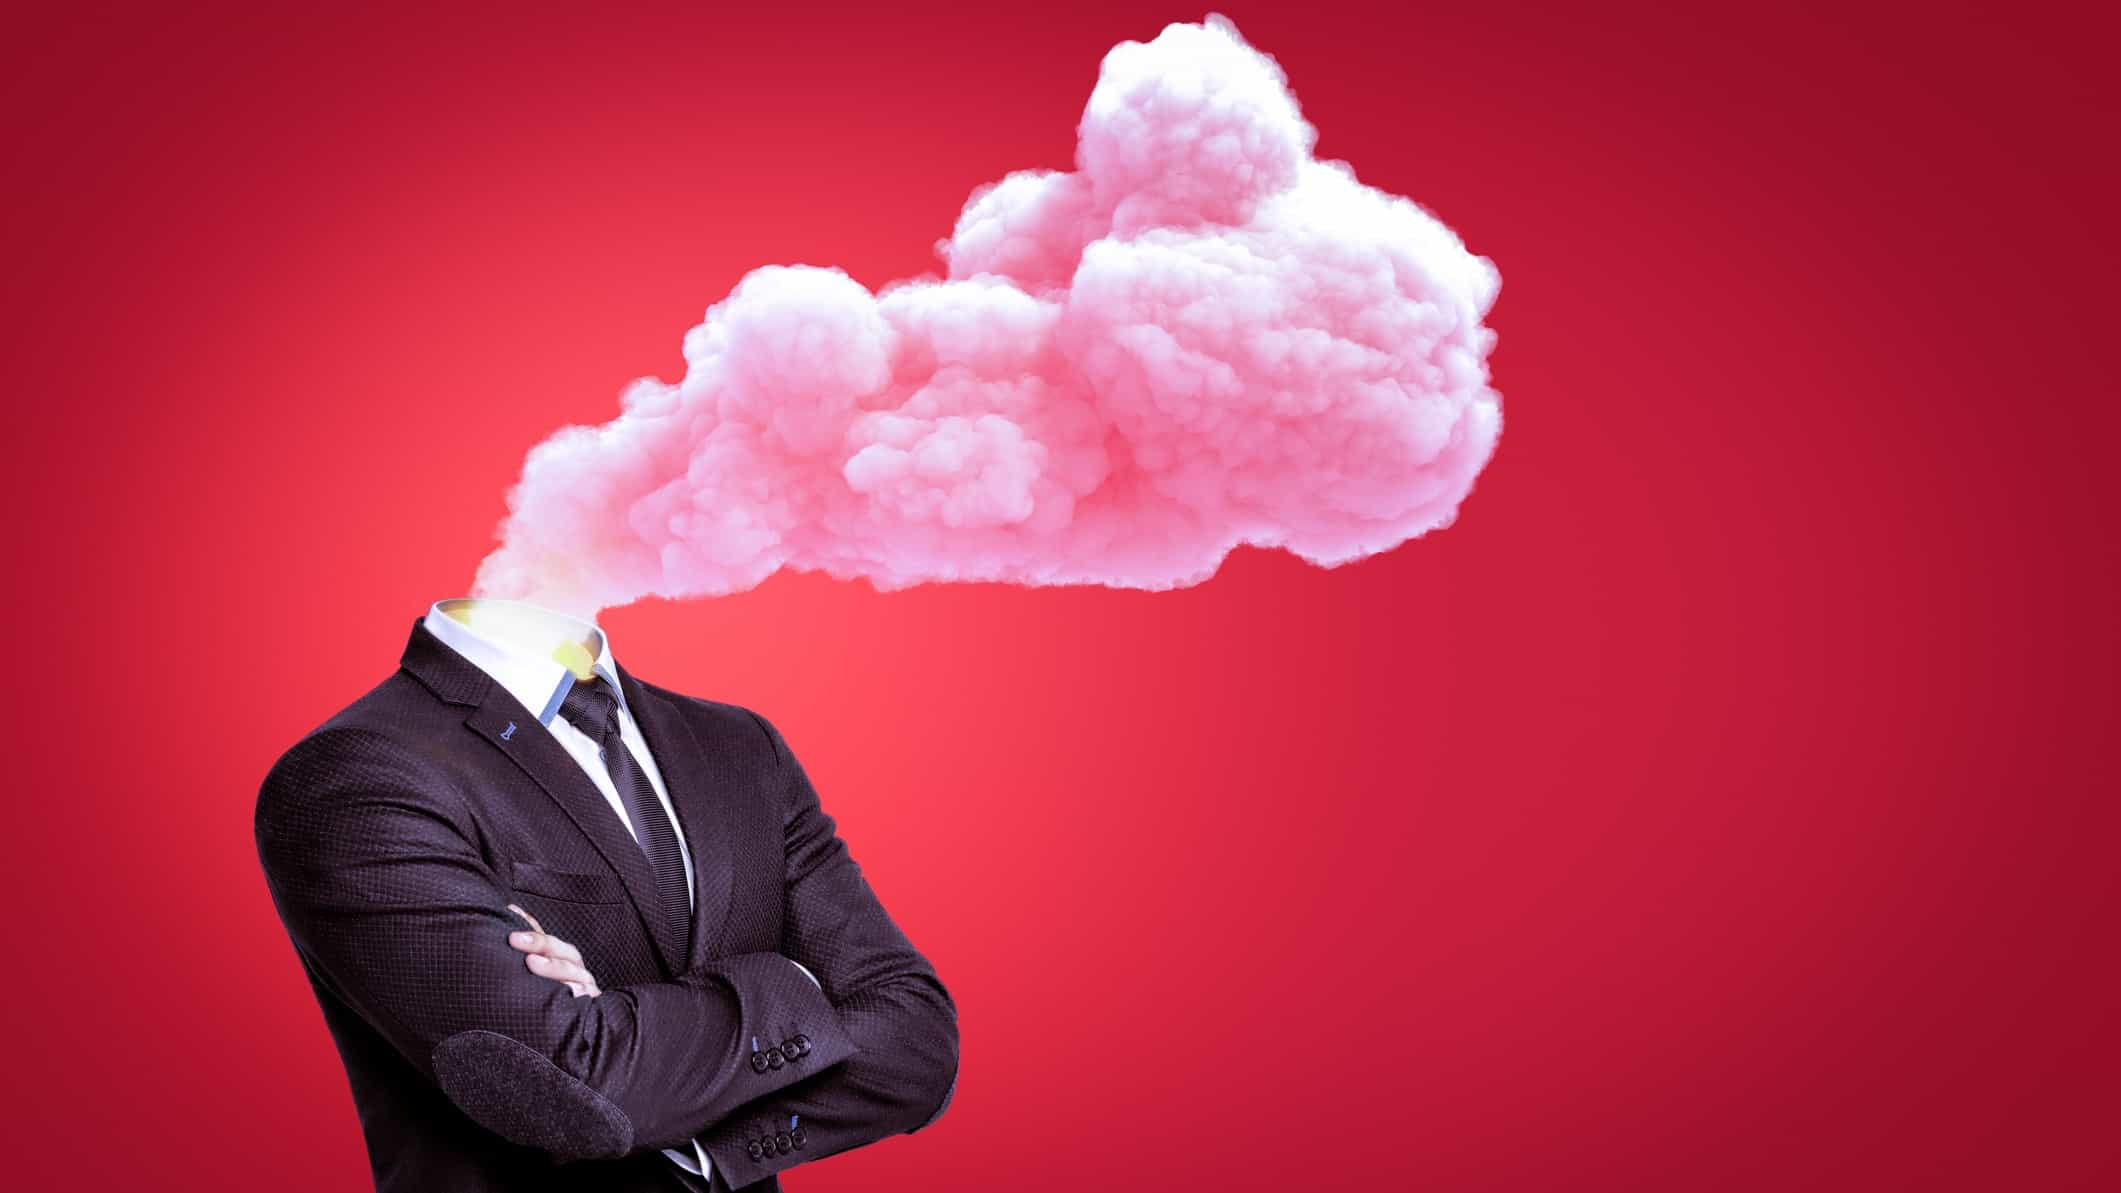 headless business man with smoke pouring from neck representing interest rate hike impact on ASX shares